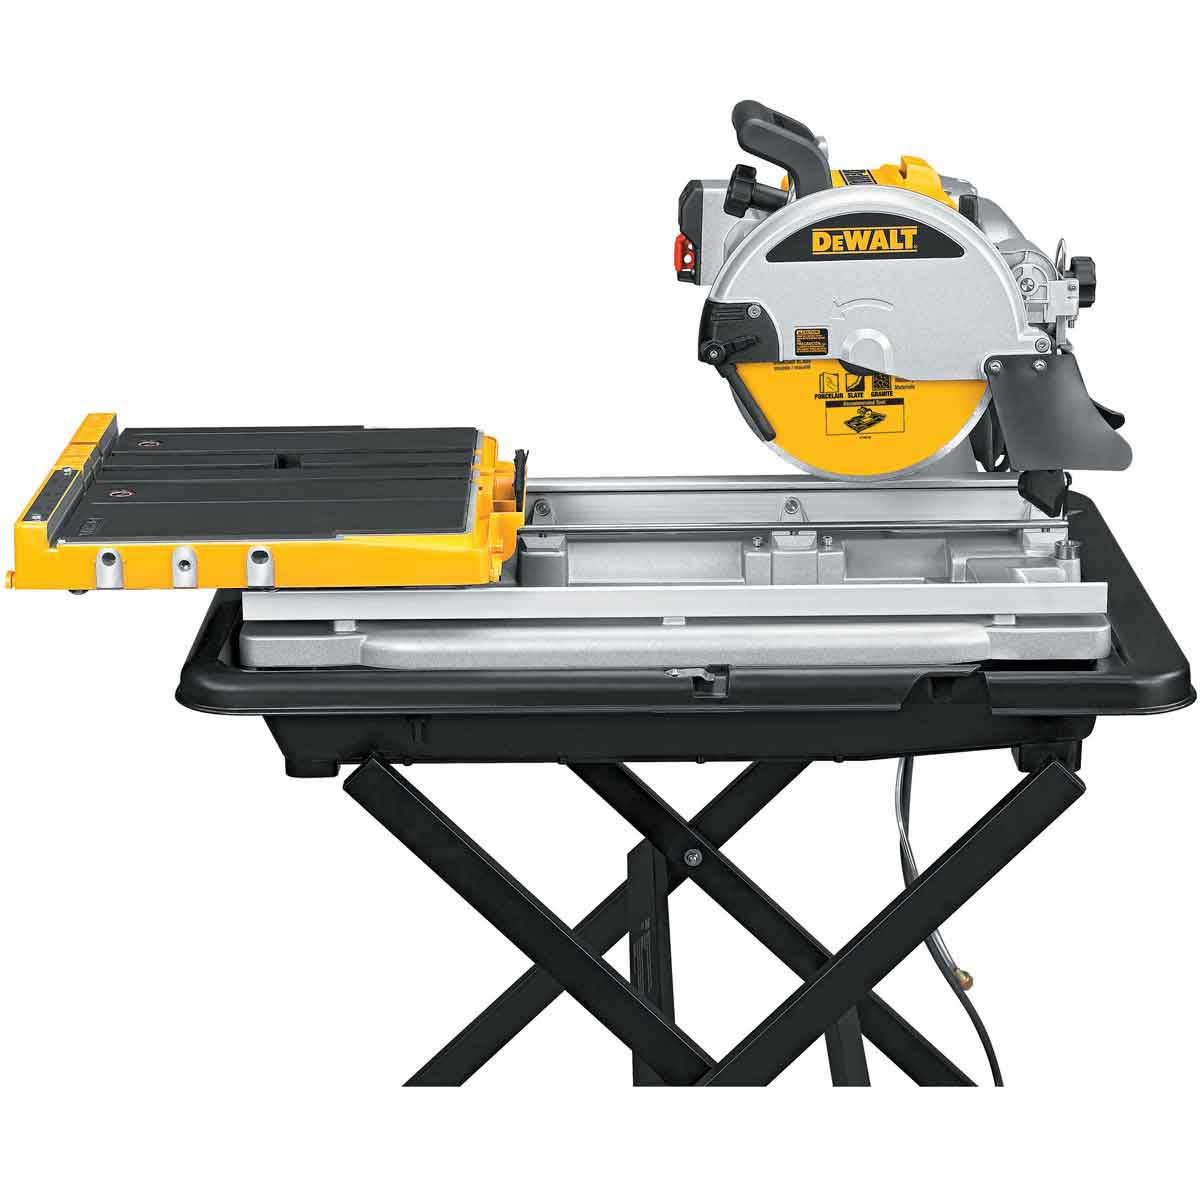 dewalt d24000 tile saw side view 2